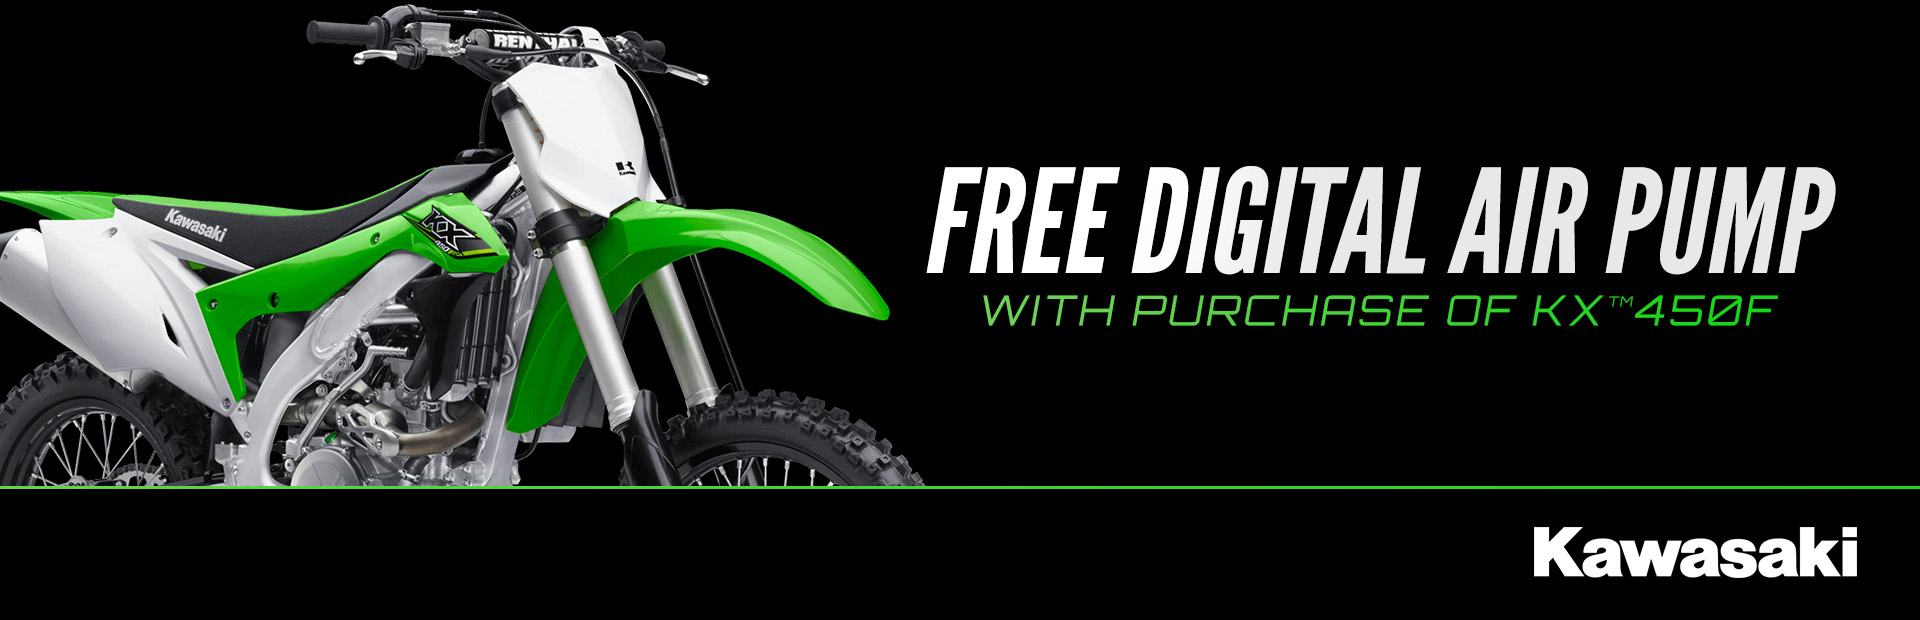 Kawasaki: Free Digital Air Pump with Purchase of KX™450F